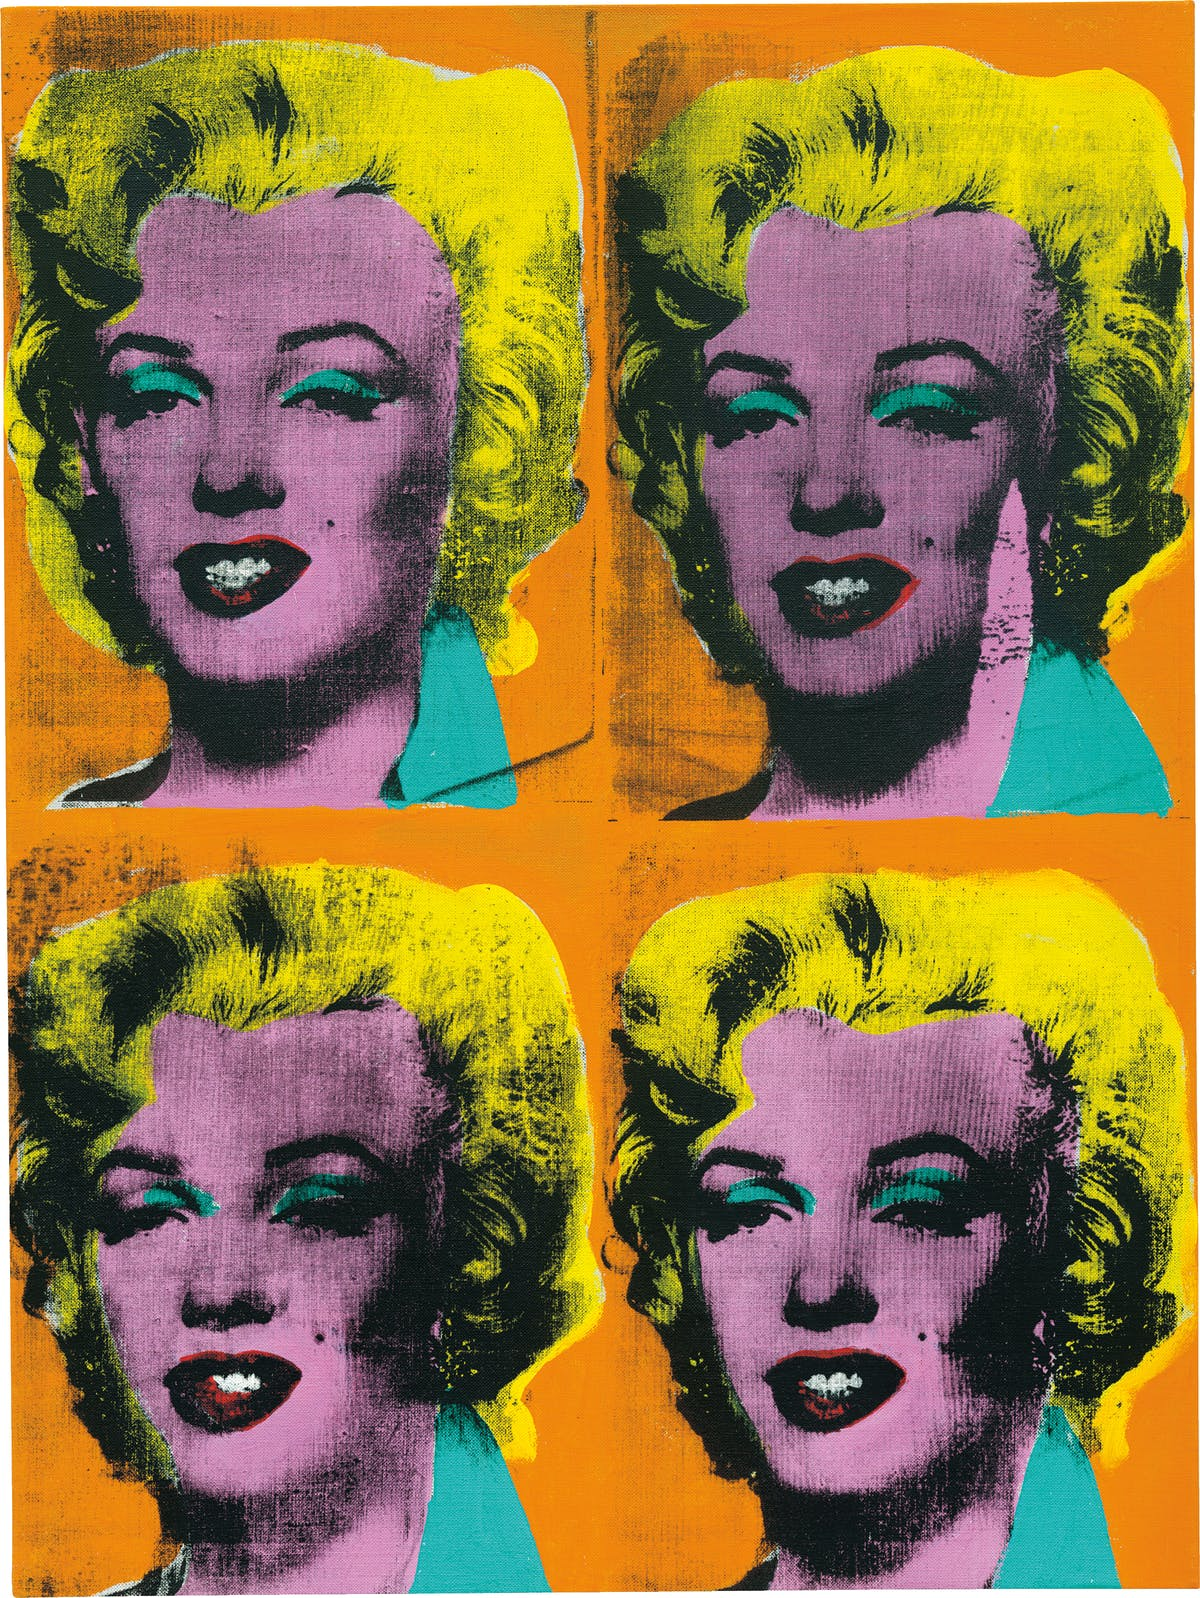 Andy Warhol, Four Marilyns, 1962 | Abb.: Christie's